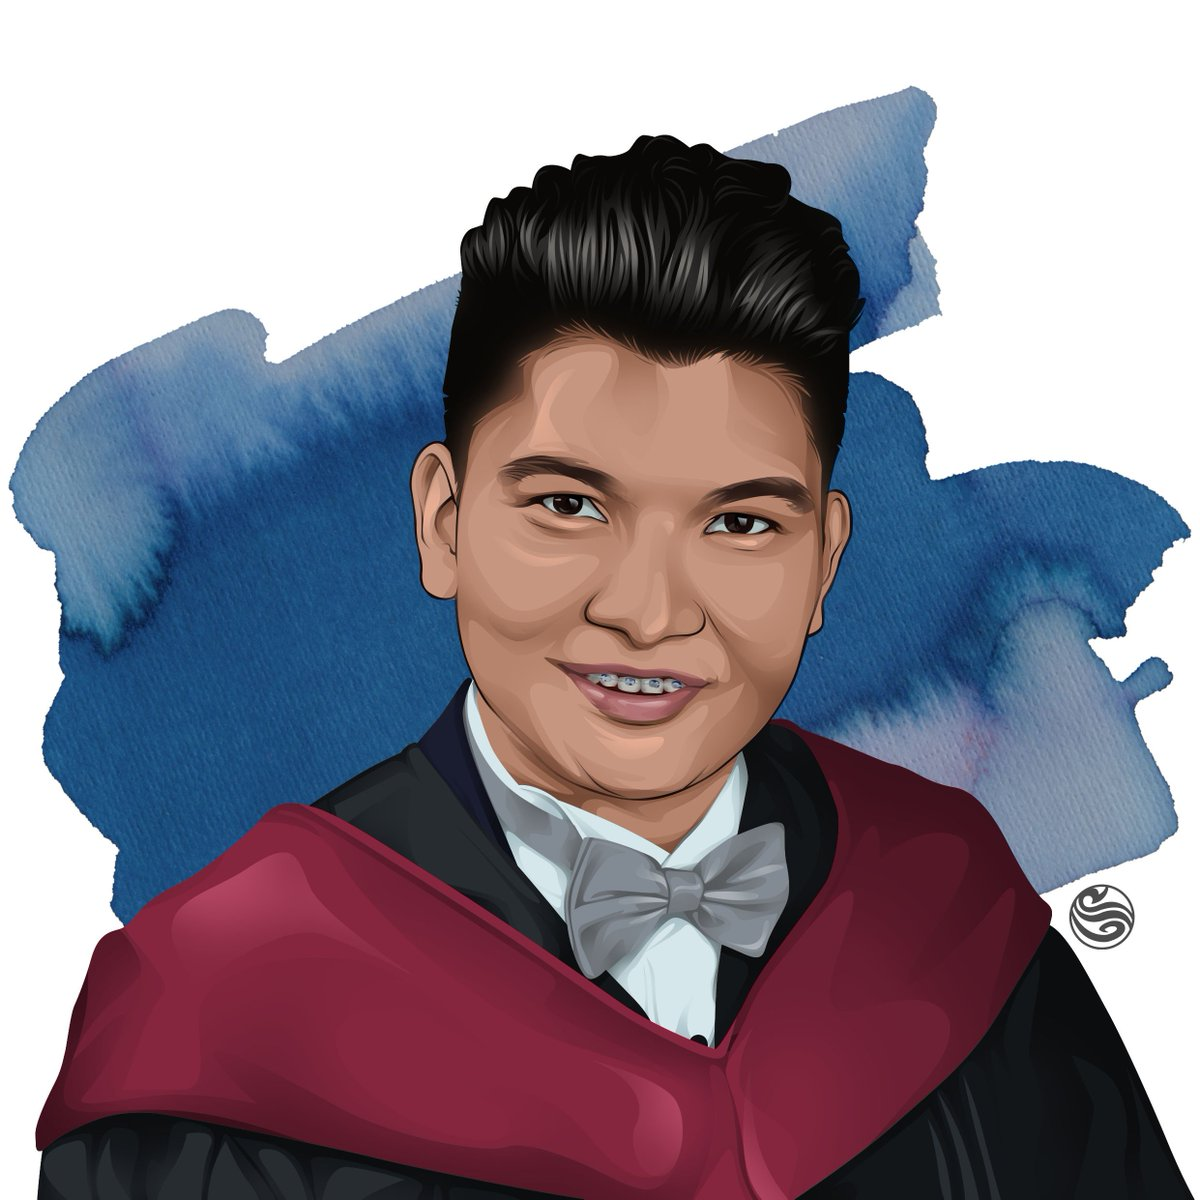 4/18 Presenting the #TeamBraces and #TeamGradPic of my #TheBestieProject  Message me for art commissions :)  #art #artph #artshare #artontwitter #vectorart #digitalart #illustration #commissions<br>http://pic.twitter.com/Ex0gHPEpkw